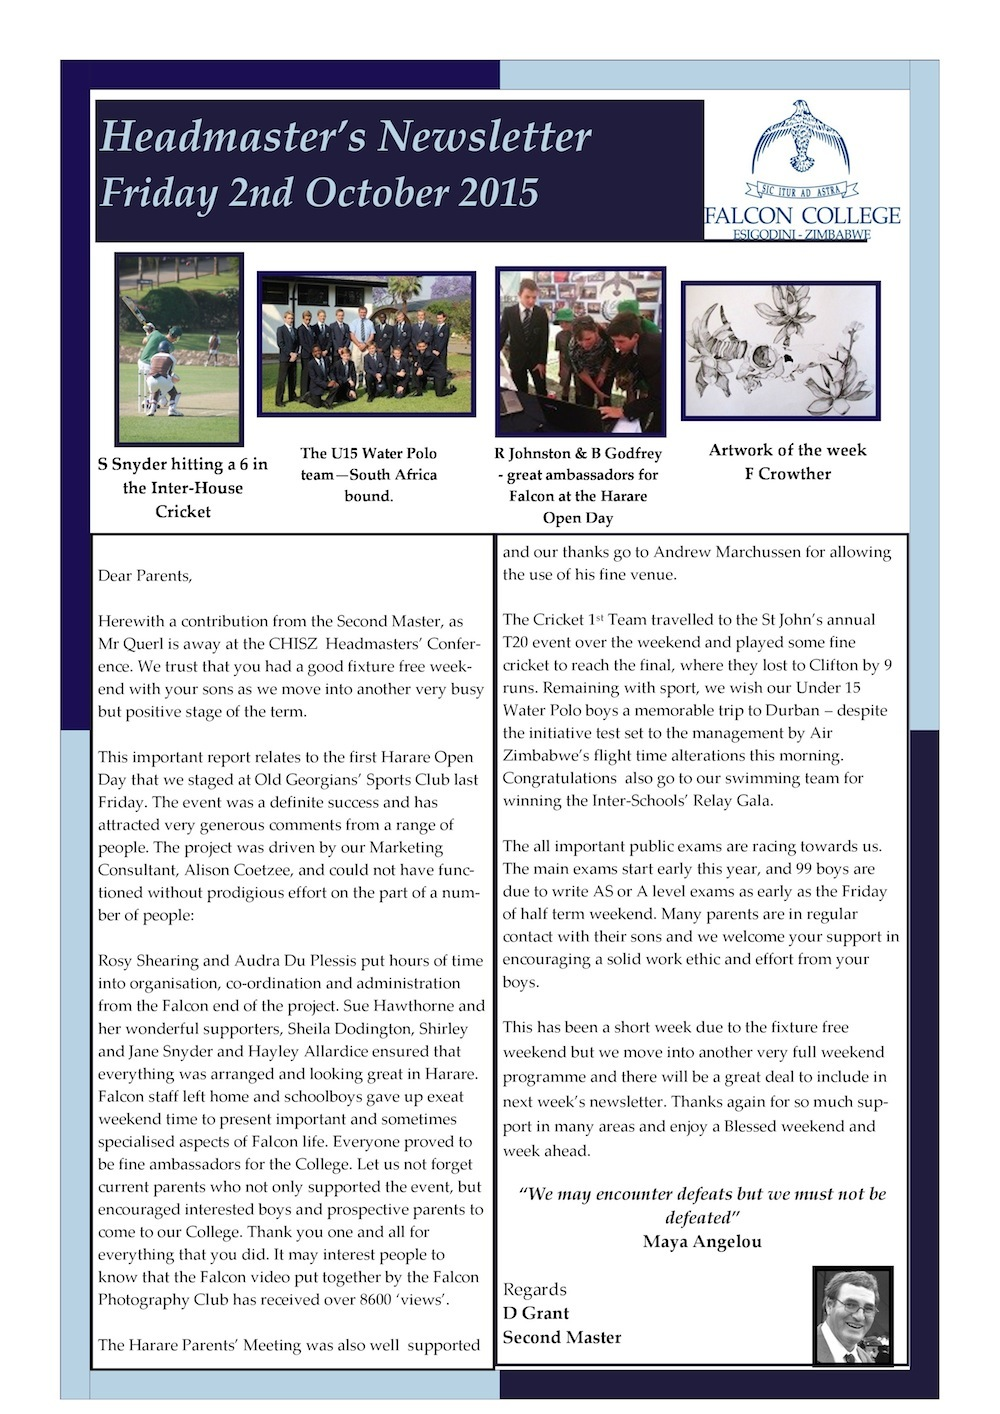 Headmaster's Newsletter Friday 2nd October 2015 edited-page-0